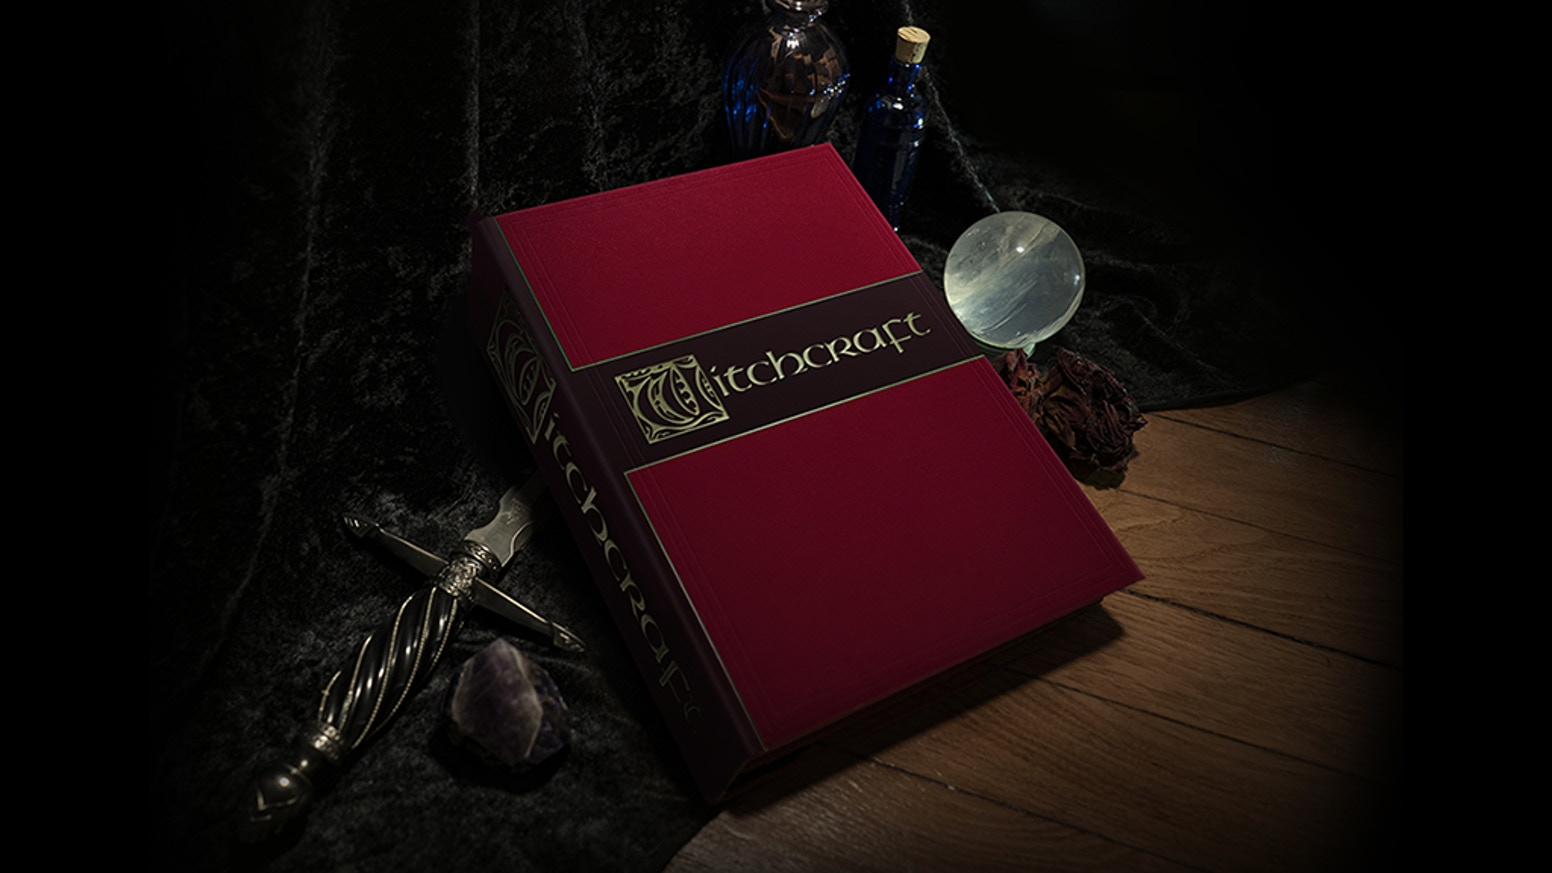 We are working hard to deliver to you the Witchcraft book on September!